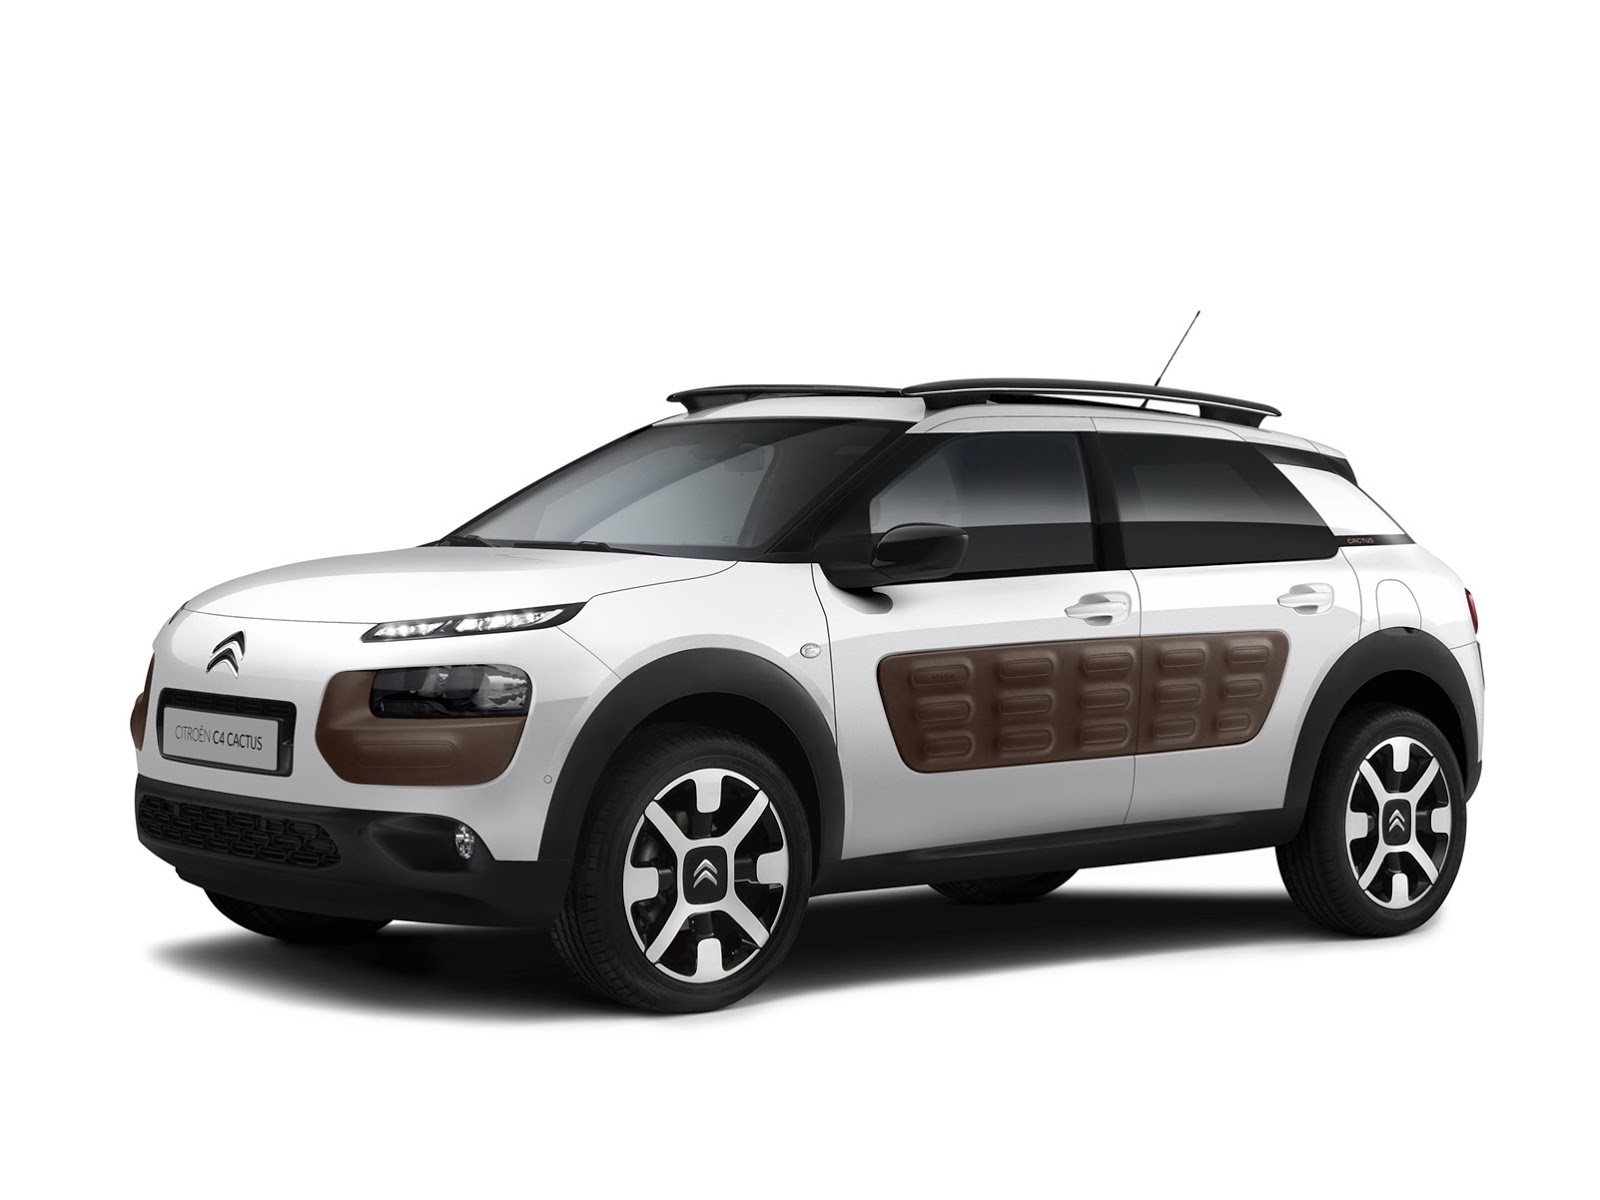 citroen c4 cactus archives the truth about cars. Black Bedroom Furniture Sets. Home Design Ideas